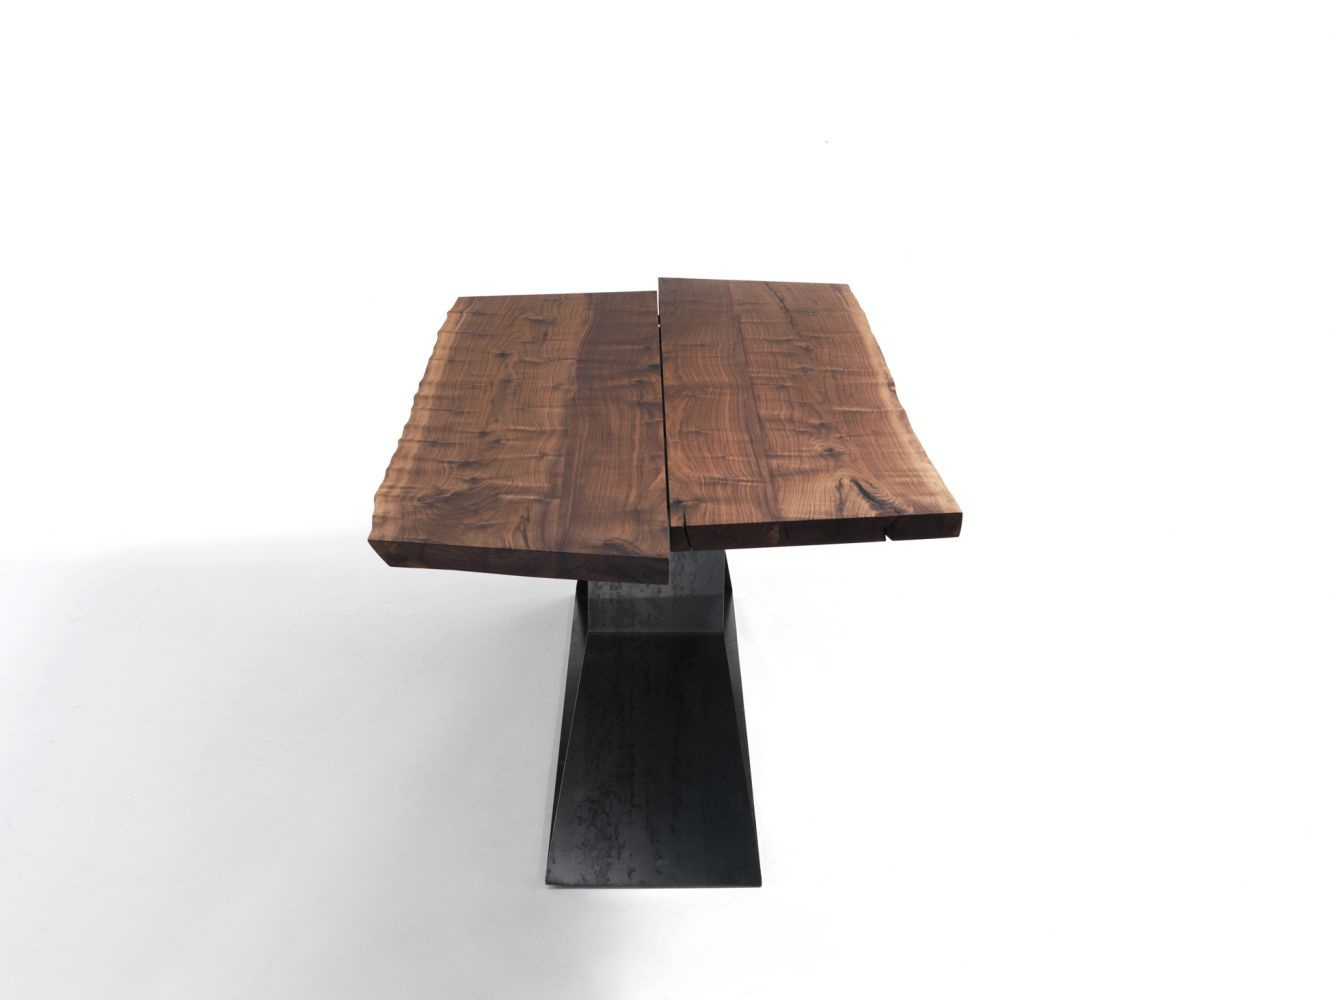 Dining table bedrock plank b riva 1920 luxury furniture mr for Table riva but